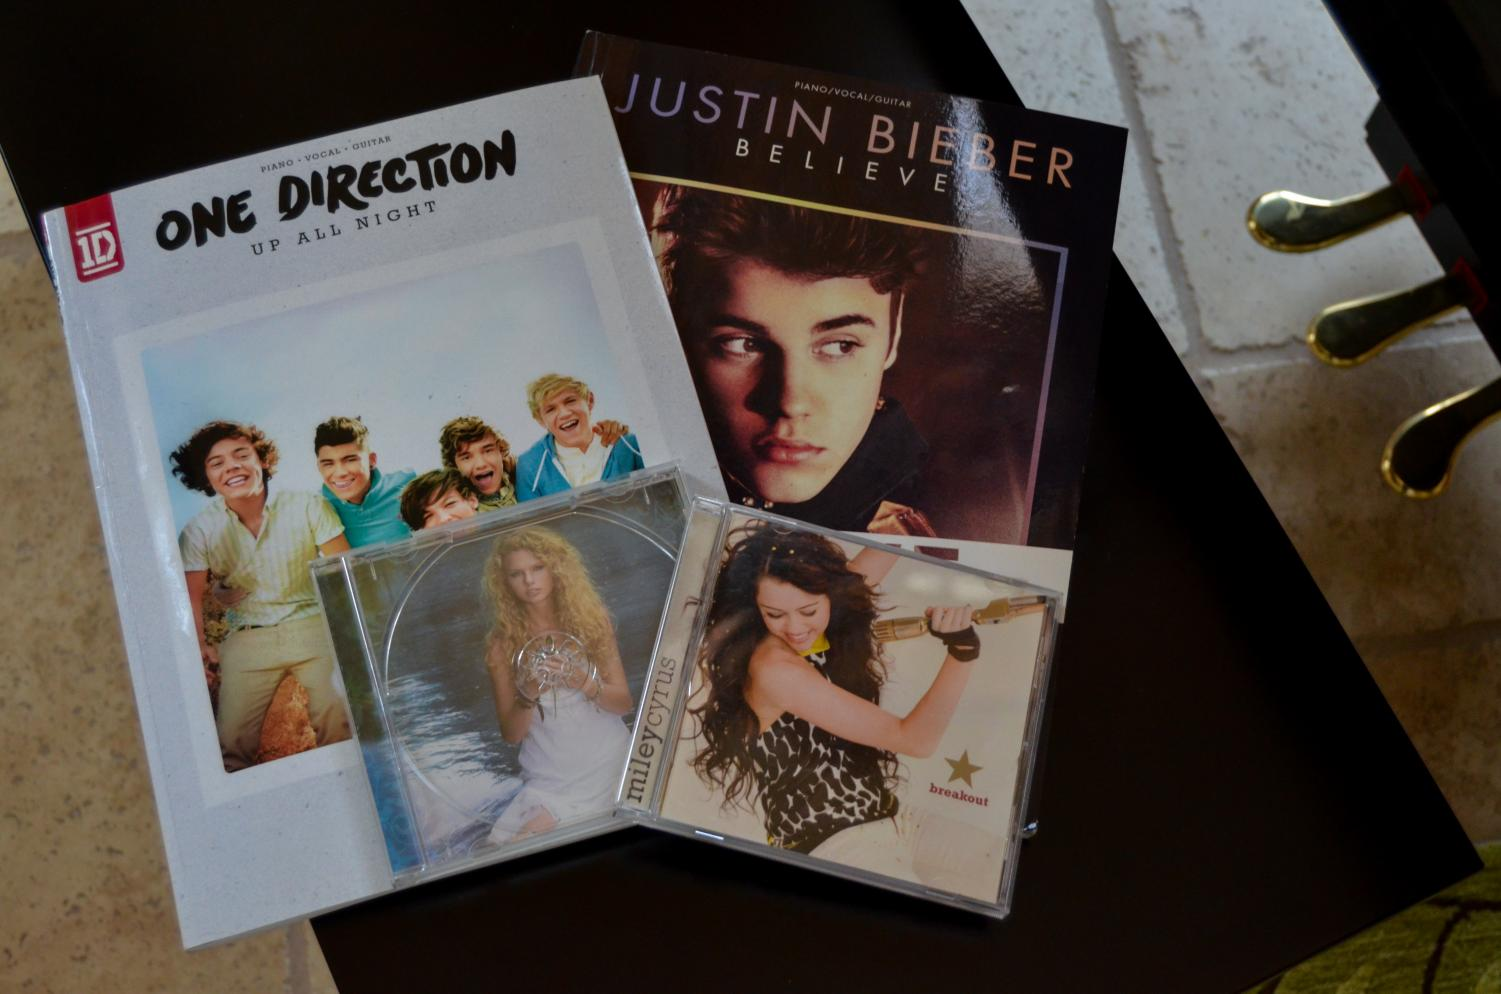 The playlist features many artists, including One Direction, Taylor Swift, Justin Bieber, and Miley Cyrus.